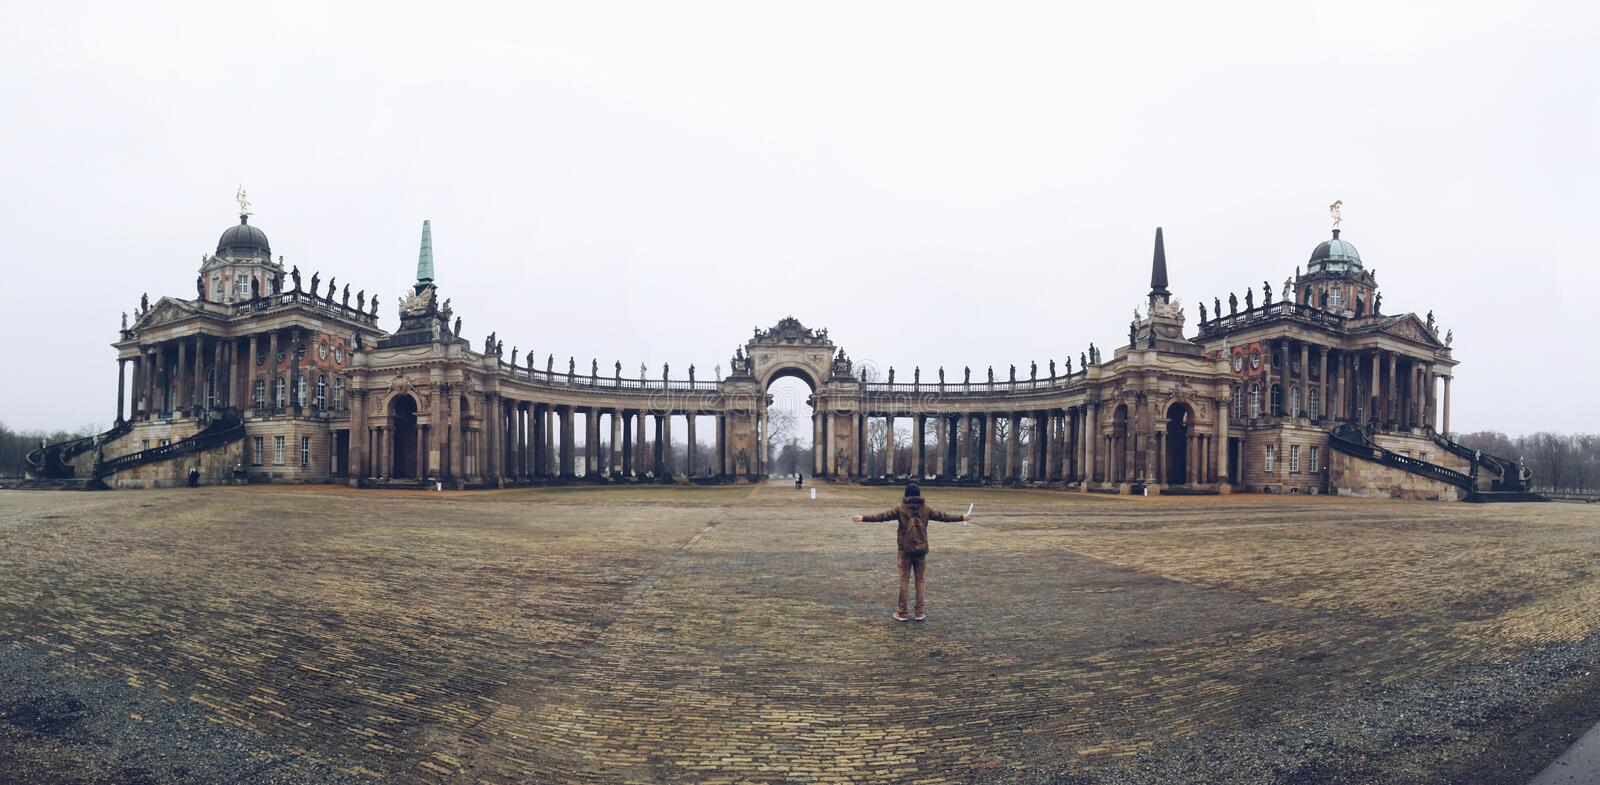 The amuzing contrast between the huge and the small. In this picture we can see the old gate of Potsdam University, Germany. It is located next to the stock images